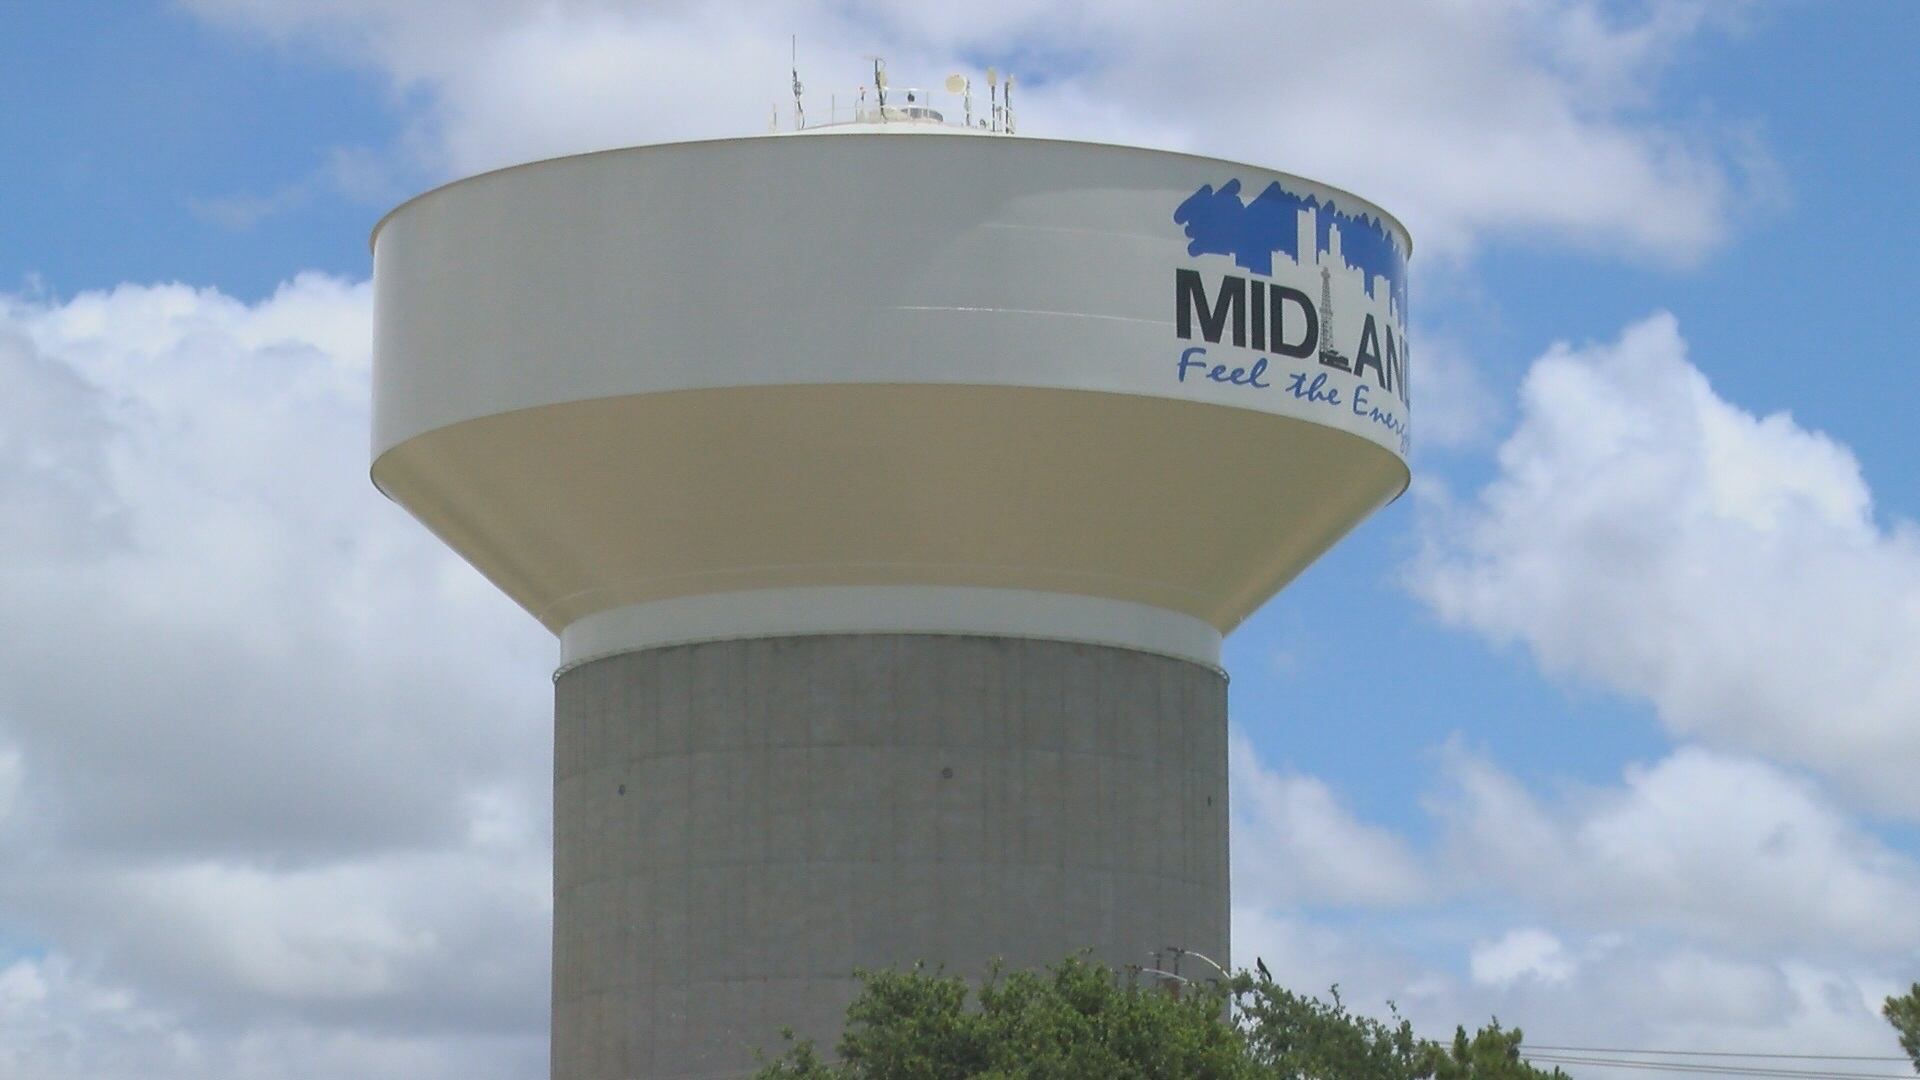 MIDLAND WATER TOWER PIC_1434579799760.jpg